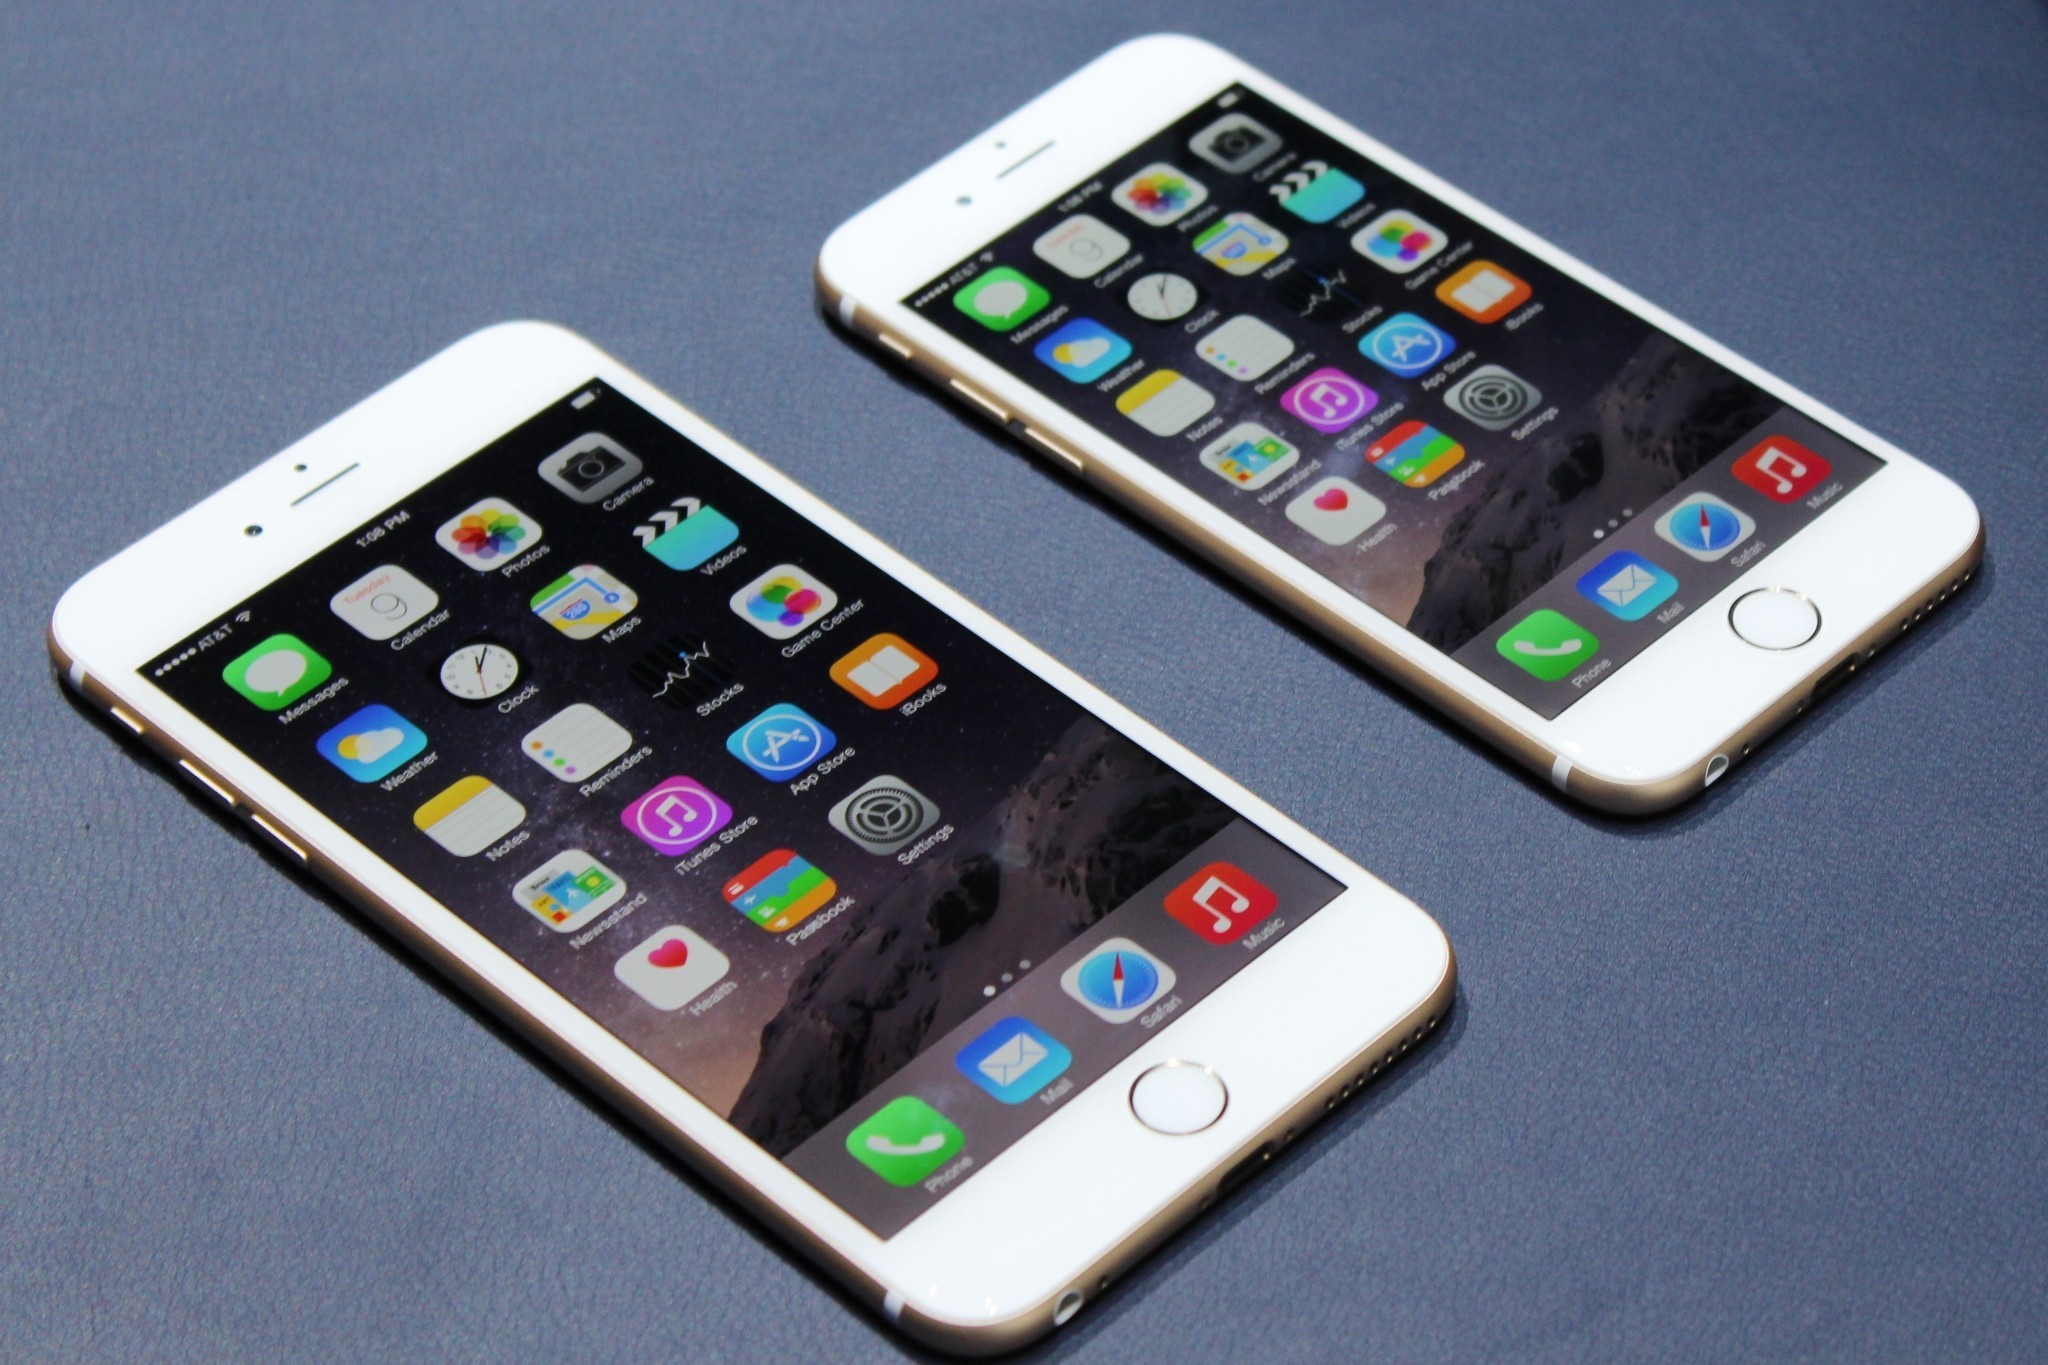 My thoughts on the iPhone 6 Plus, five months later